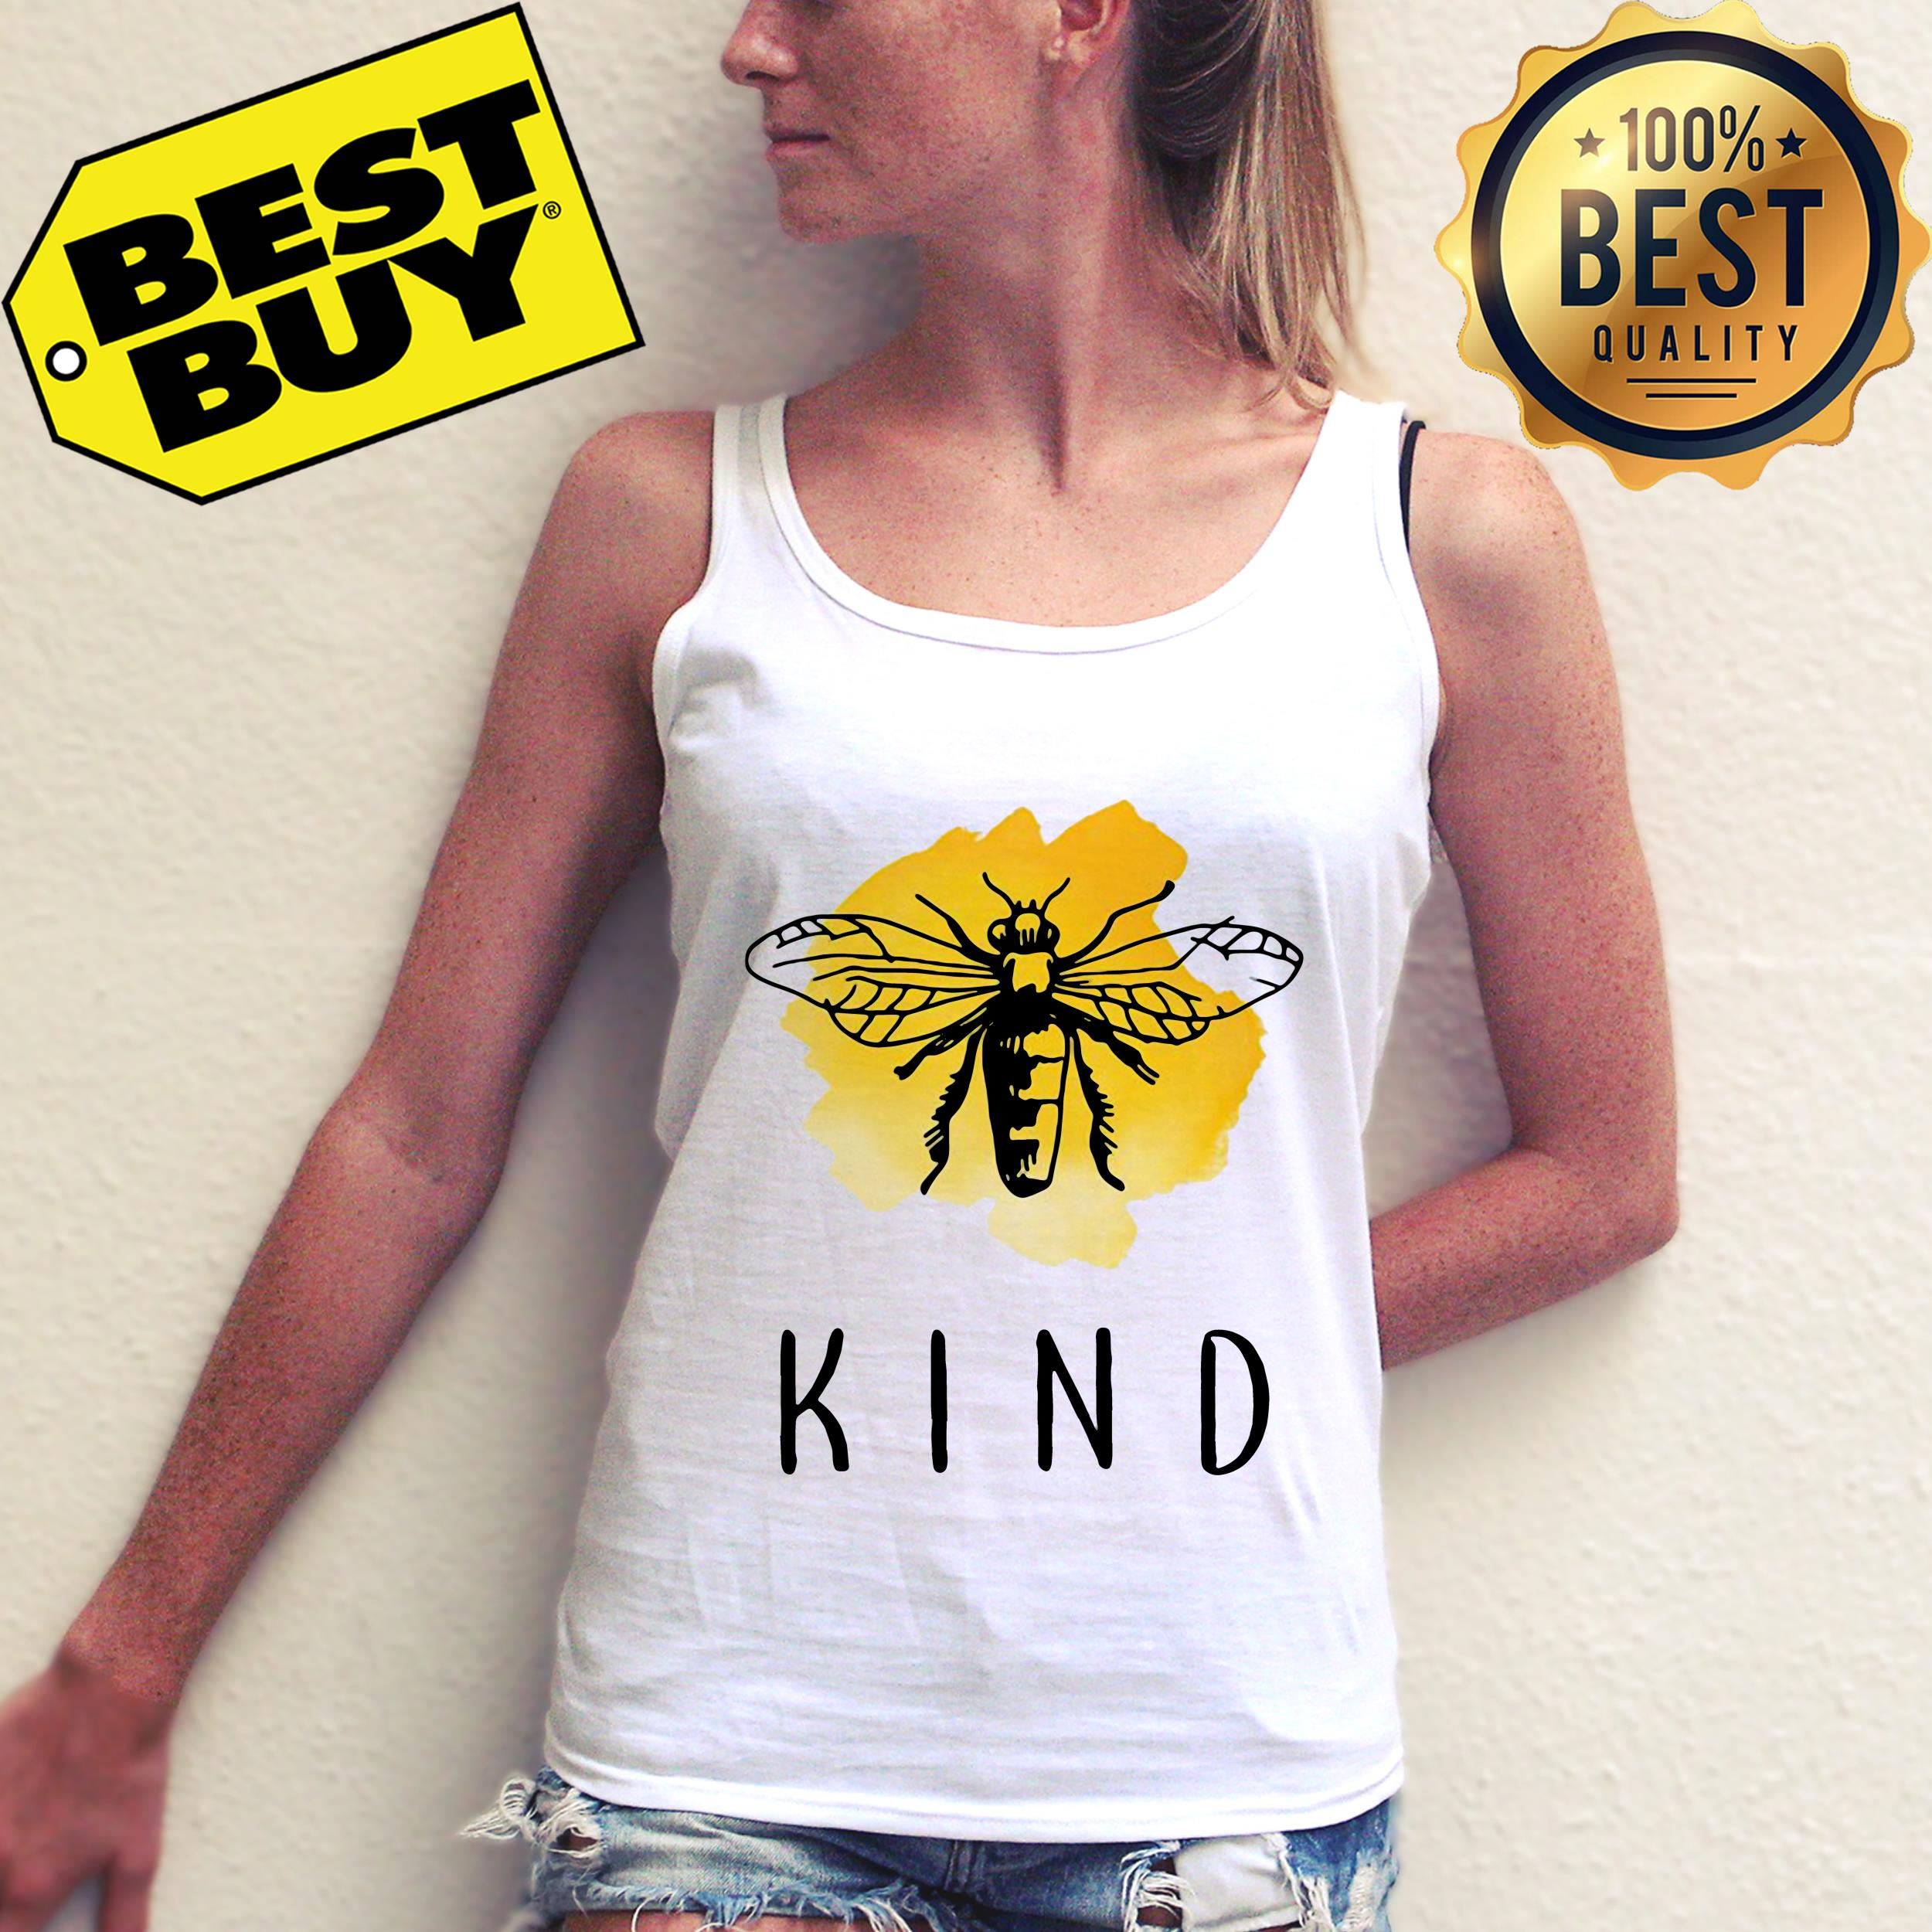 Official Bee Kind tank top